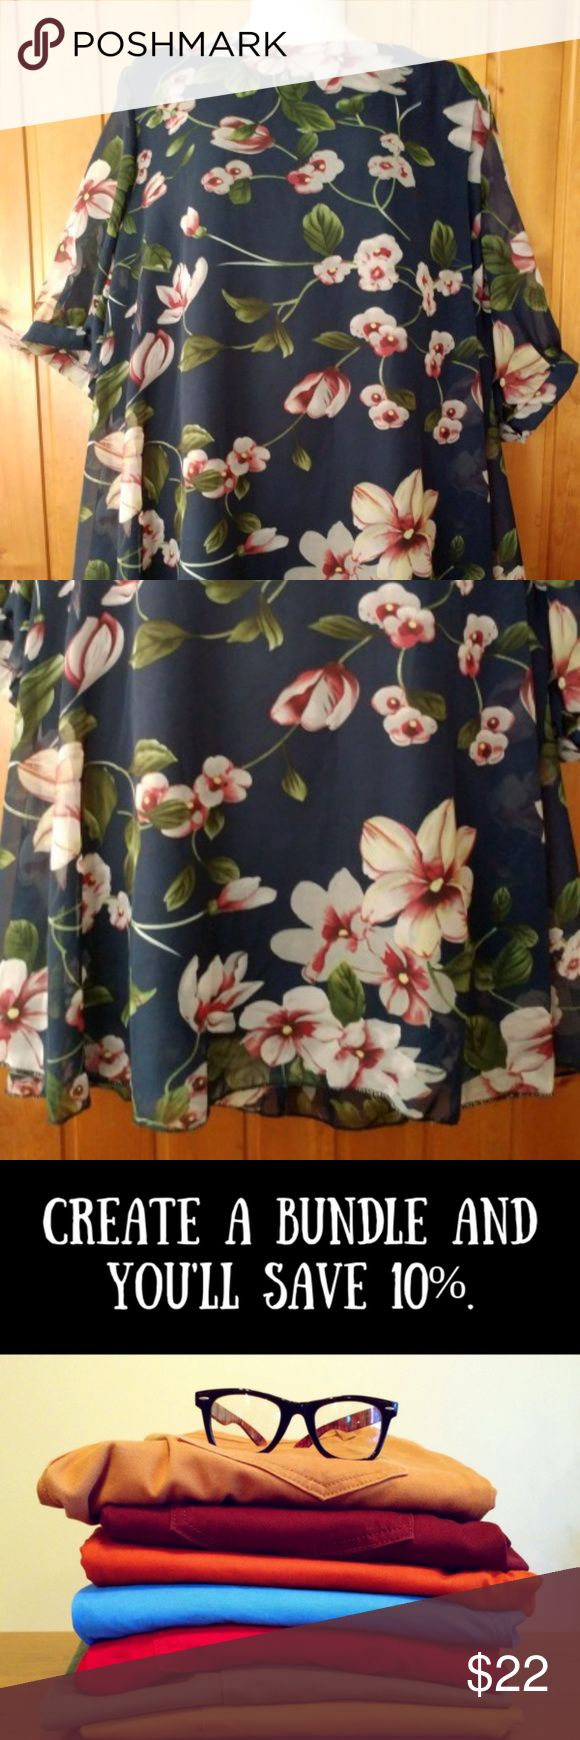 Navy Floral Plus Size Sheer Top with Lining 2X Florals are IN this year and this beautiful top will look great in your closet! This navy blue floral top is sheer with a lining underneath. The sleeves have a button cuff.  Brand: Highness Size: 2X  Measurements Chest: 24 inches Waist: 26 1/2 inches Hips: 30 inches Length: 31 inches Sleeves: 7 inches  Bundle with at least 1 other item in our closet for a 10% discount and save on shipping. All items ship from a smoke free home. Highness Tops…